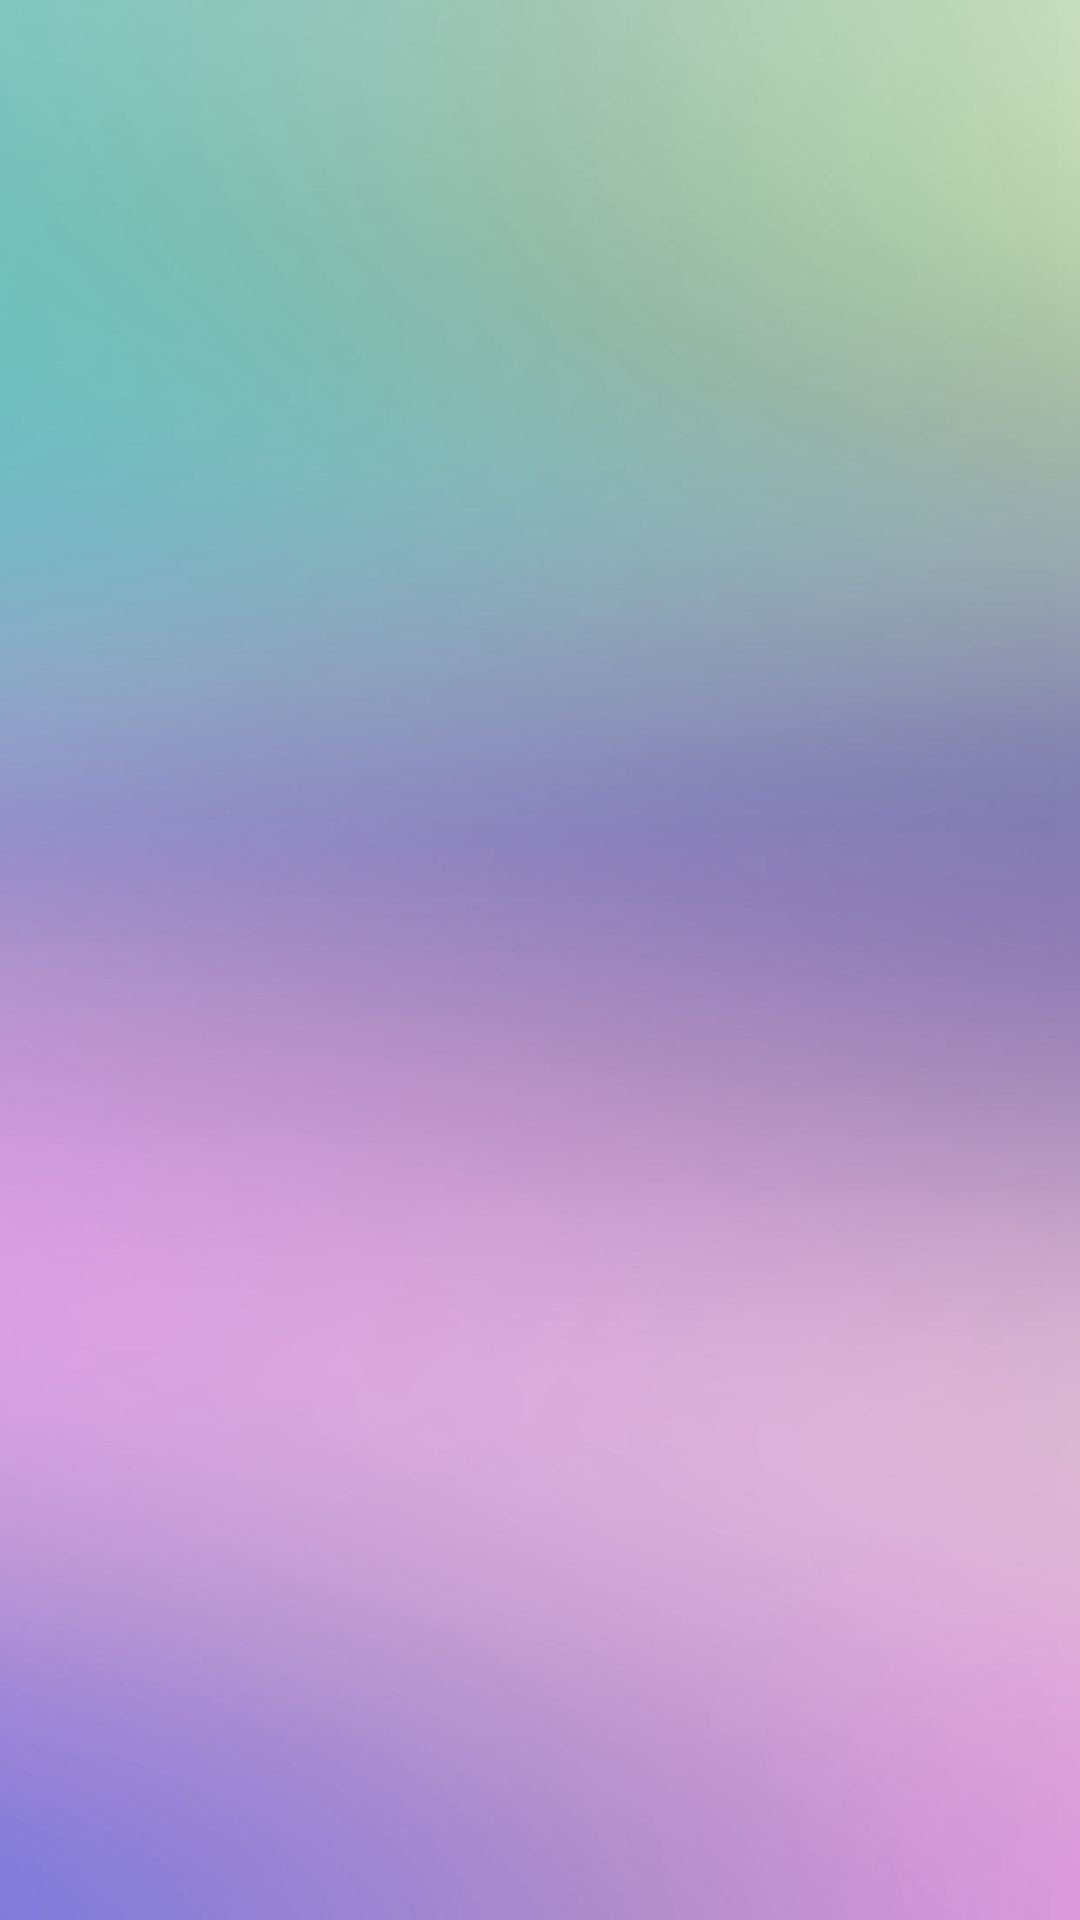 1080x1920 Abstract Blue Blur Gradation   Iphone X Blur Background 1080x1920